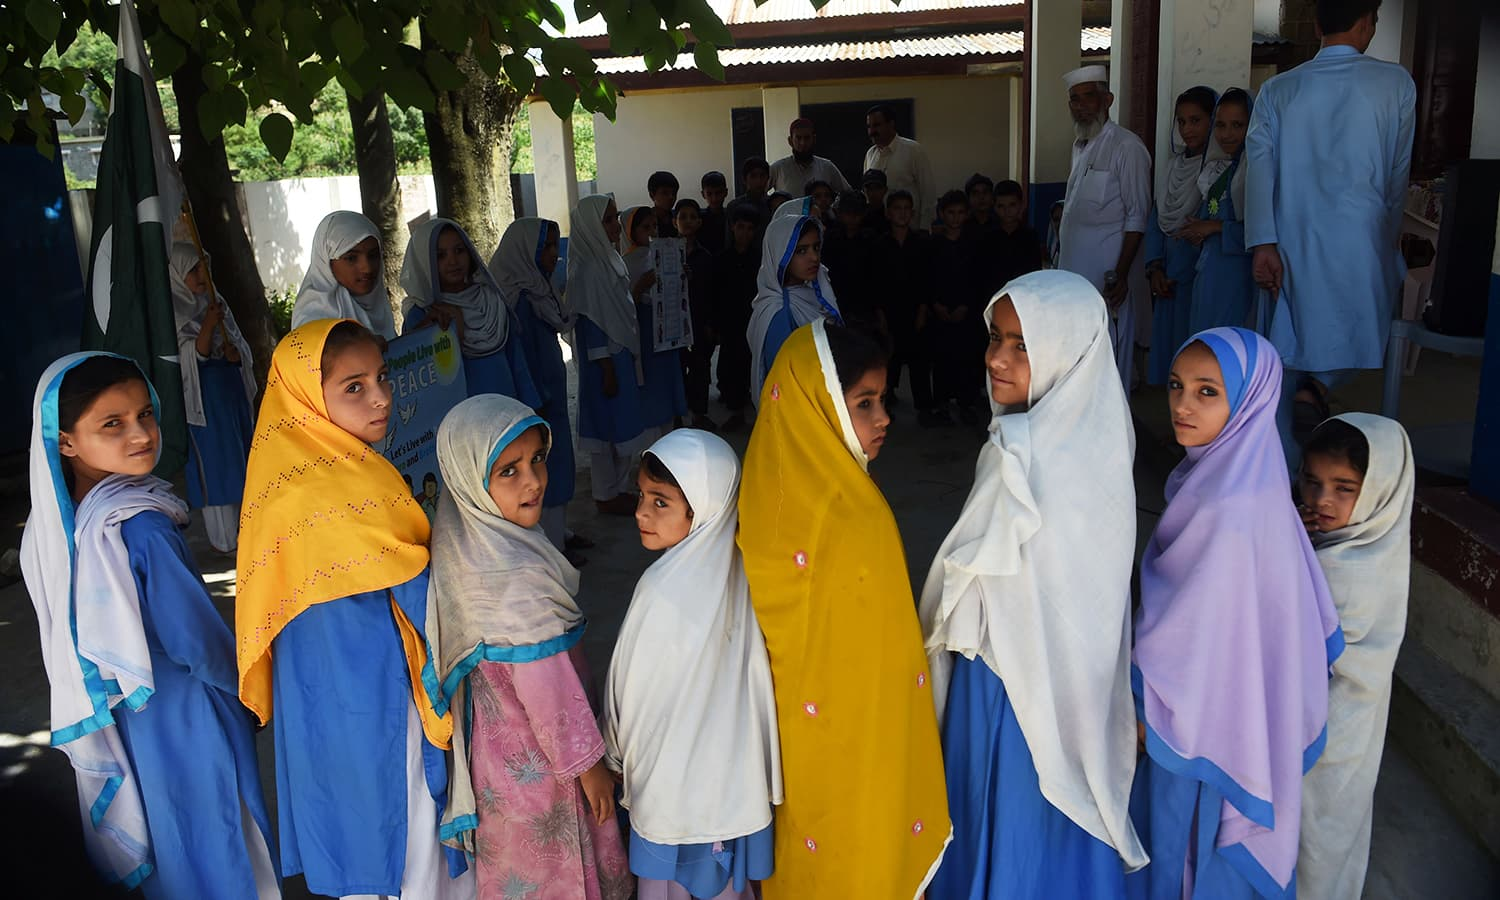 Hindko speaking schoolchildren sing the national anthem at their school in Mansehra.— AFP